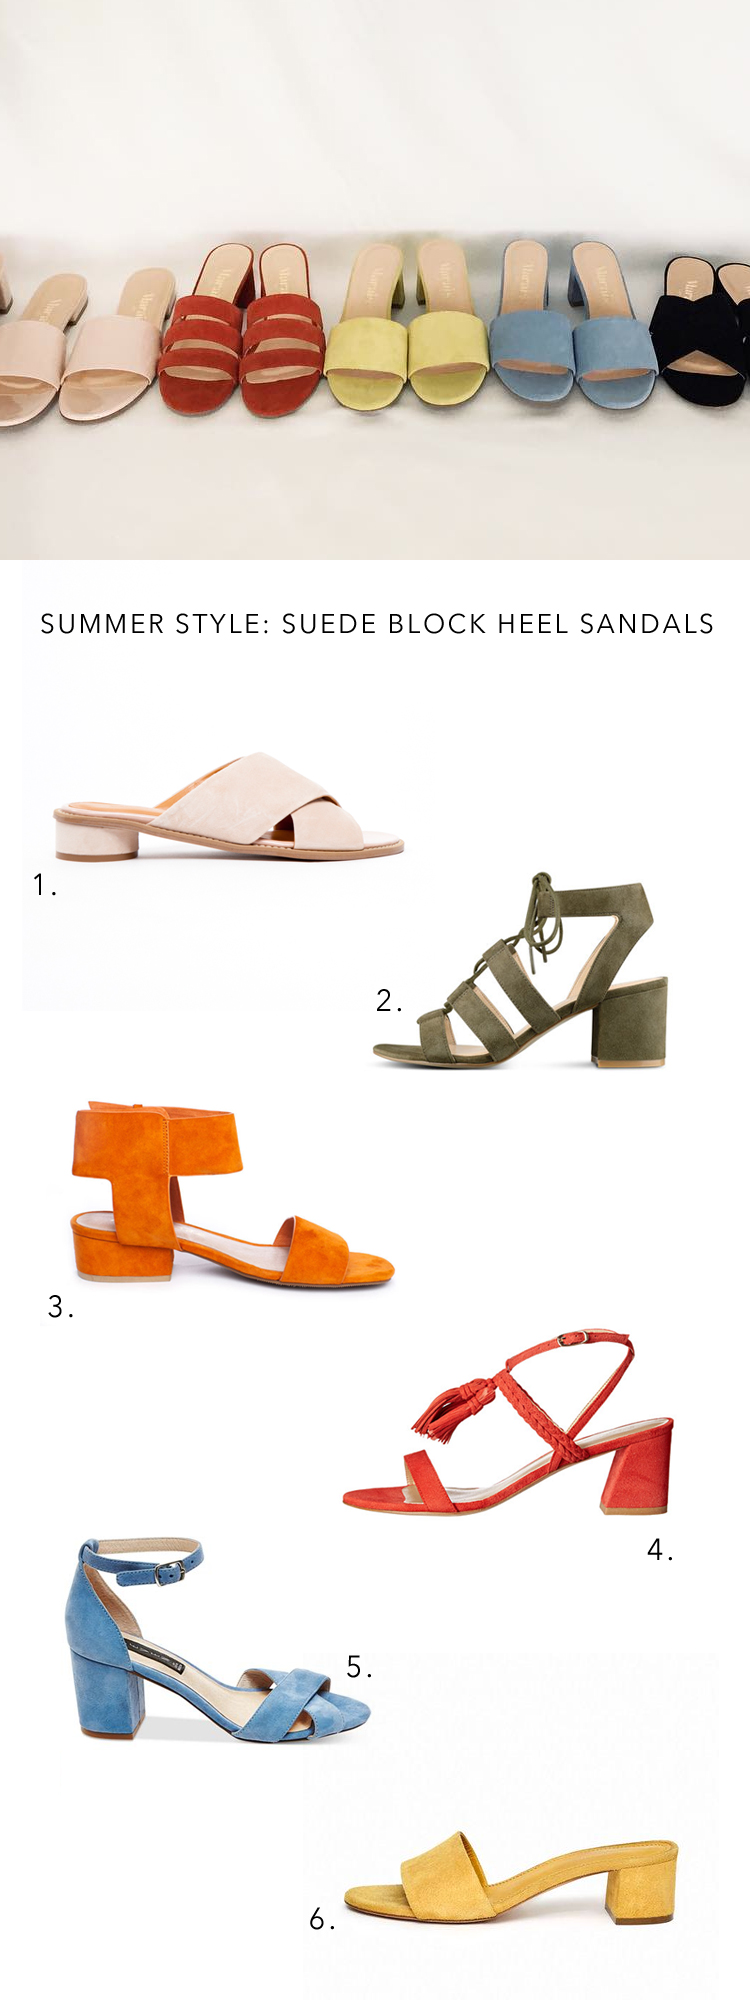 the best block heel suede sandals for summer via @citysage